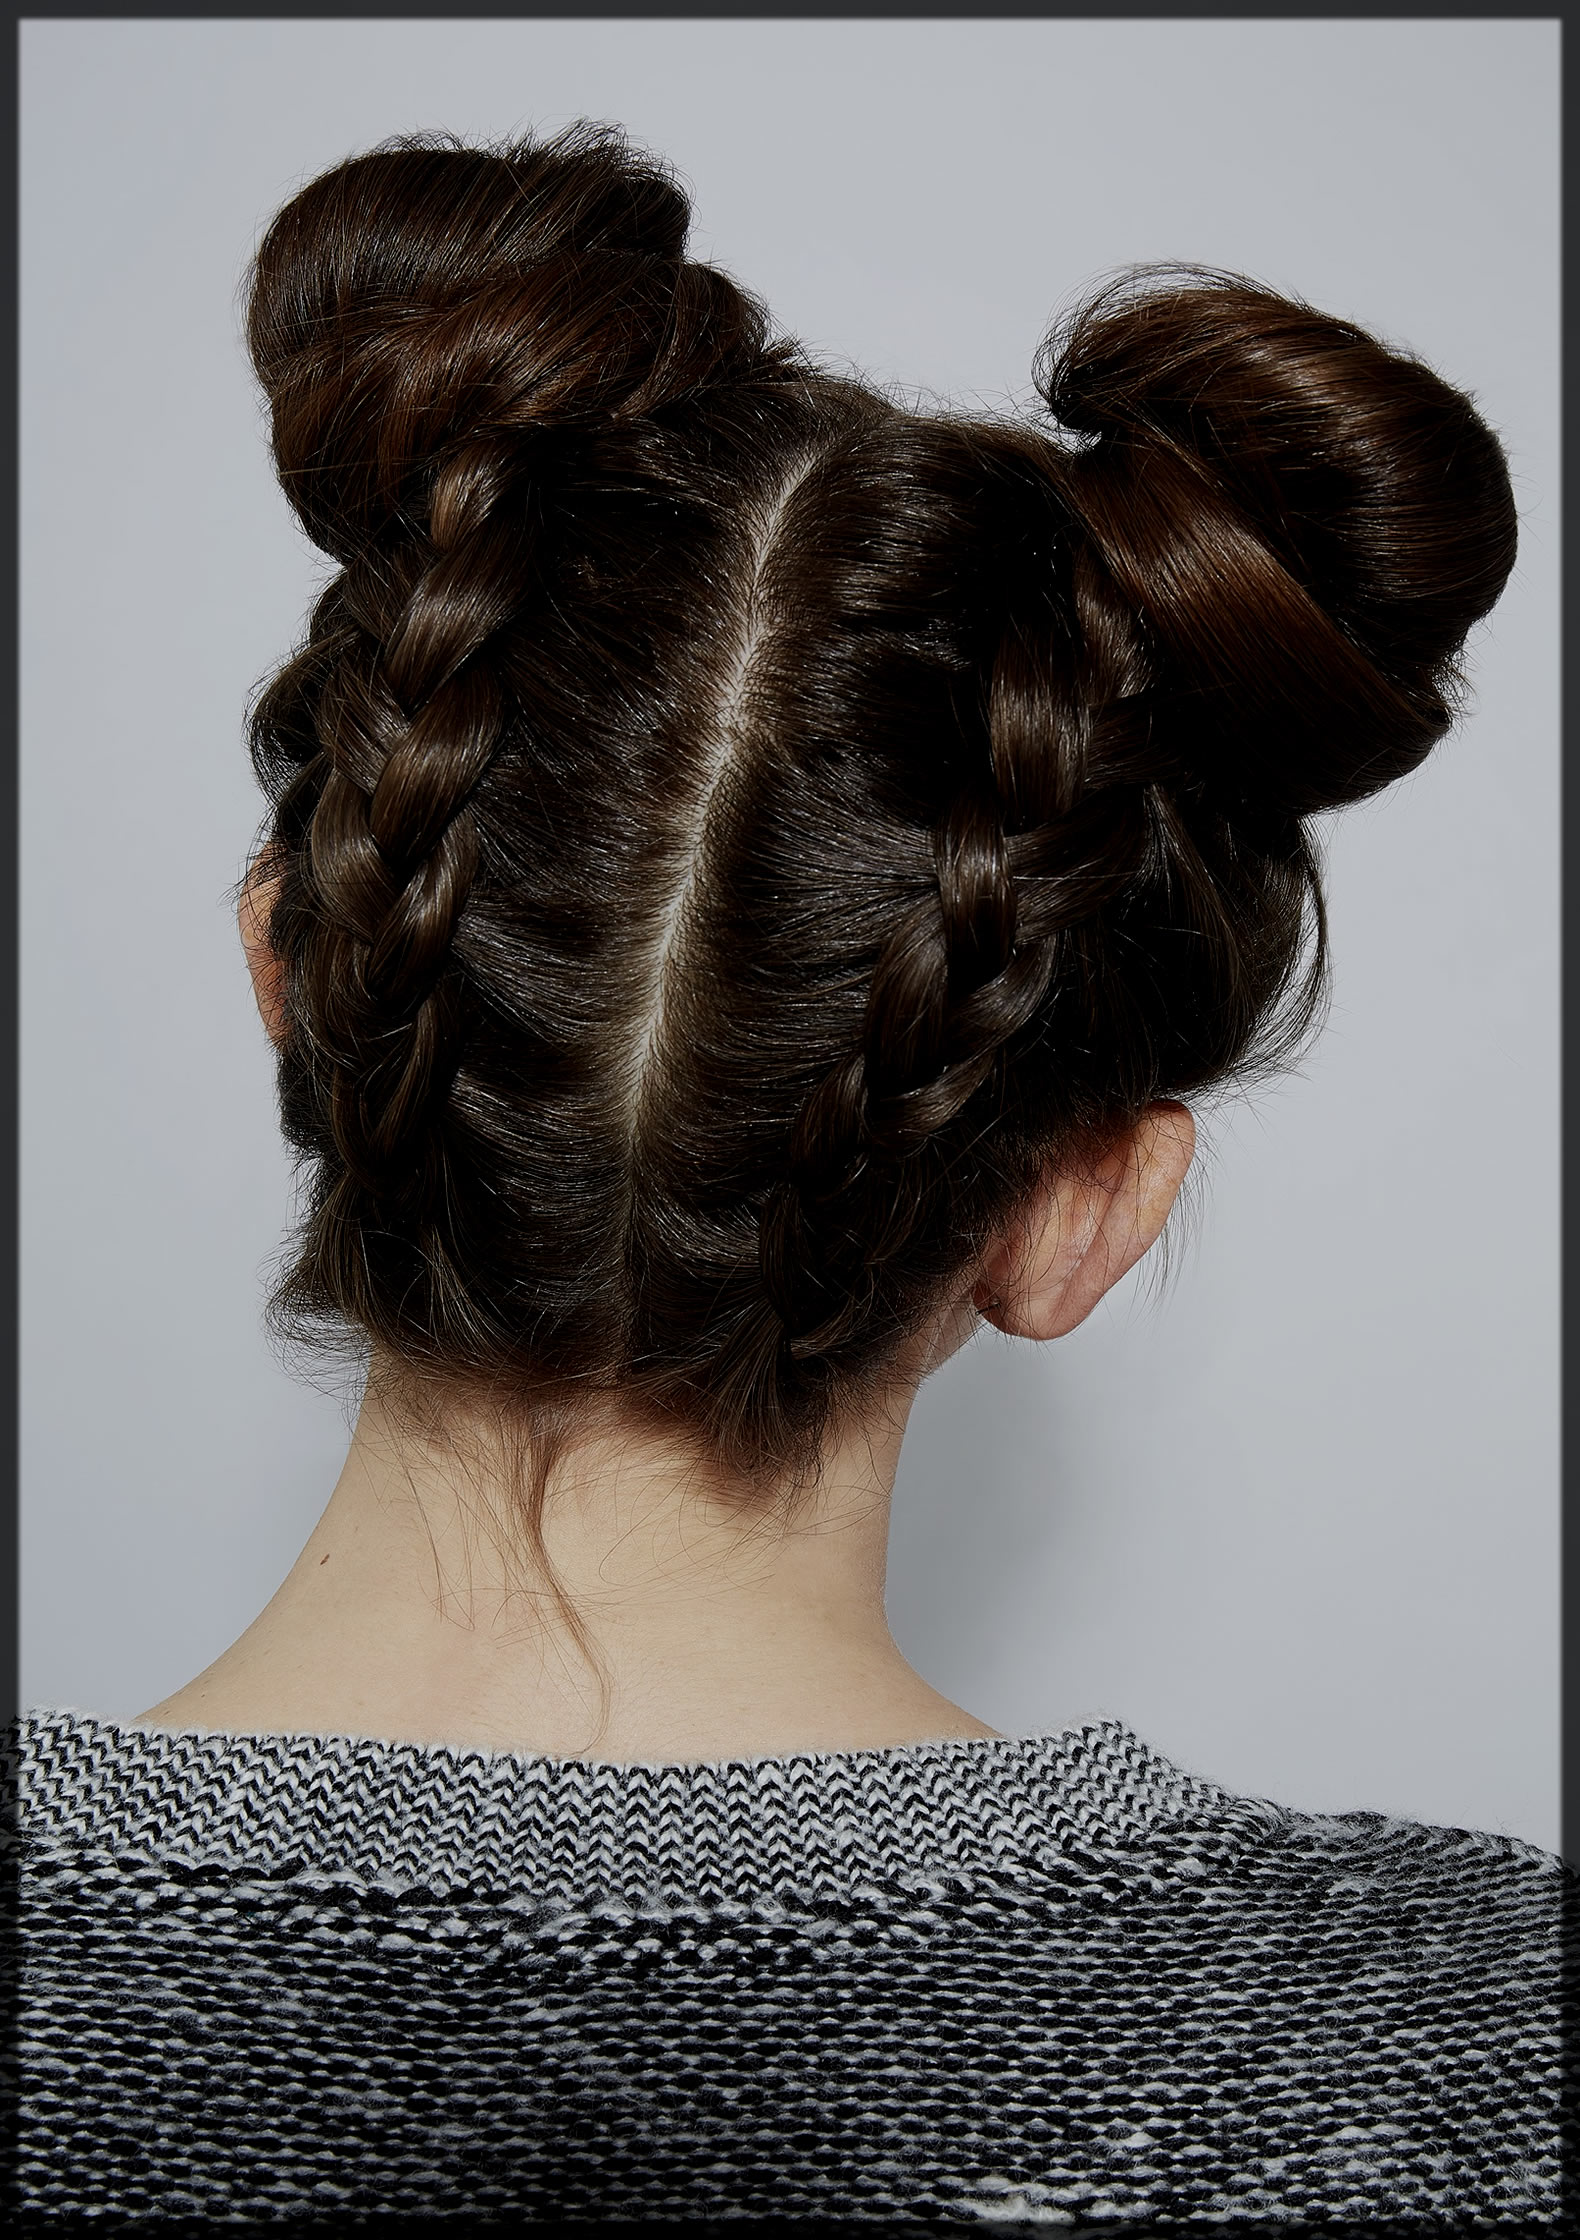 Braided Knot For Girls